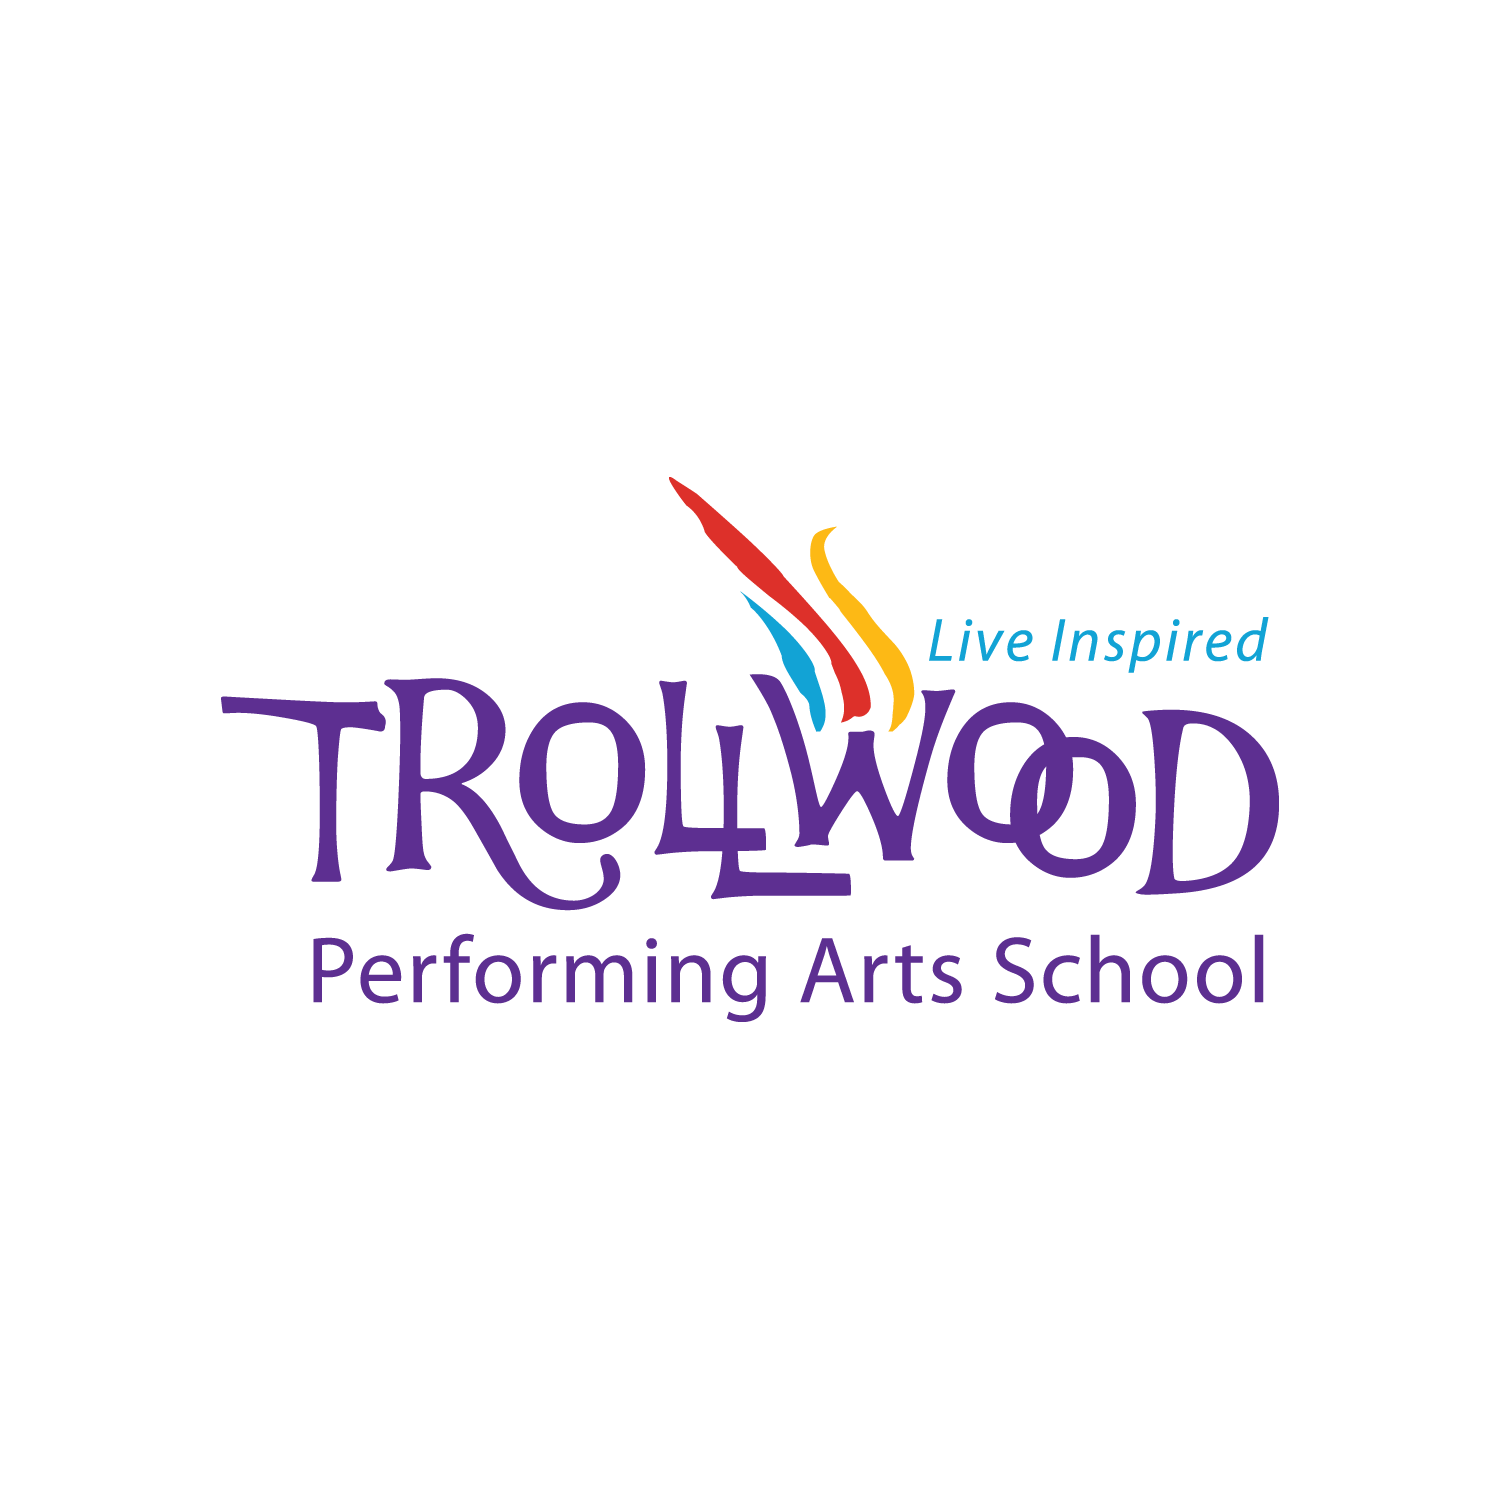 Trollwood Performing Arts School